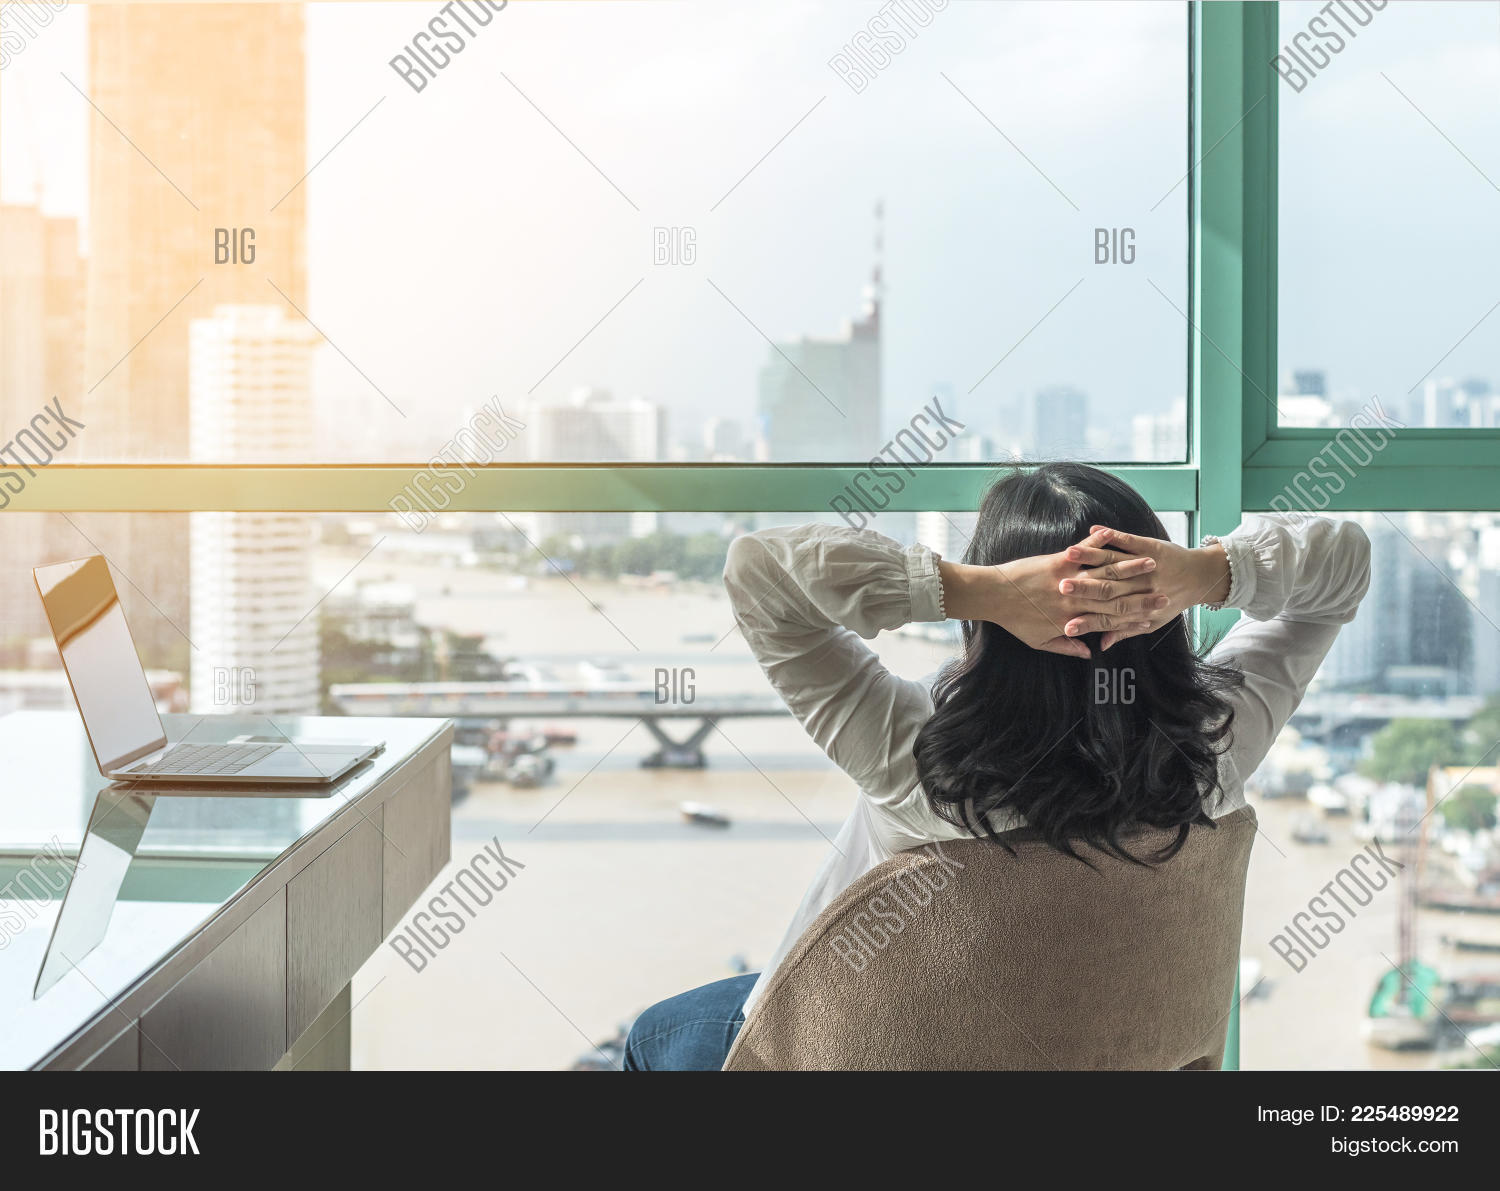 Life-work Balance And Carefree Mental Health Concept With Woman Take It Easy Working And  Resting In